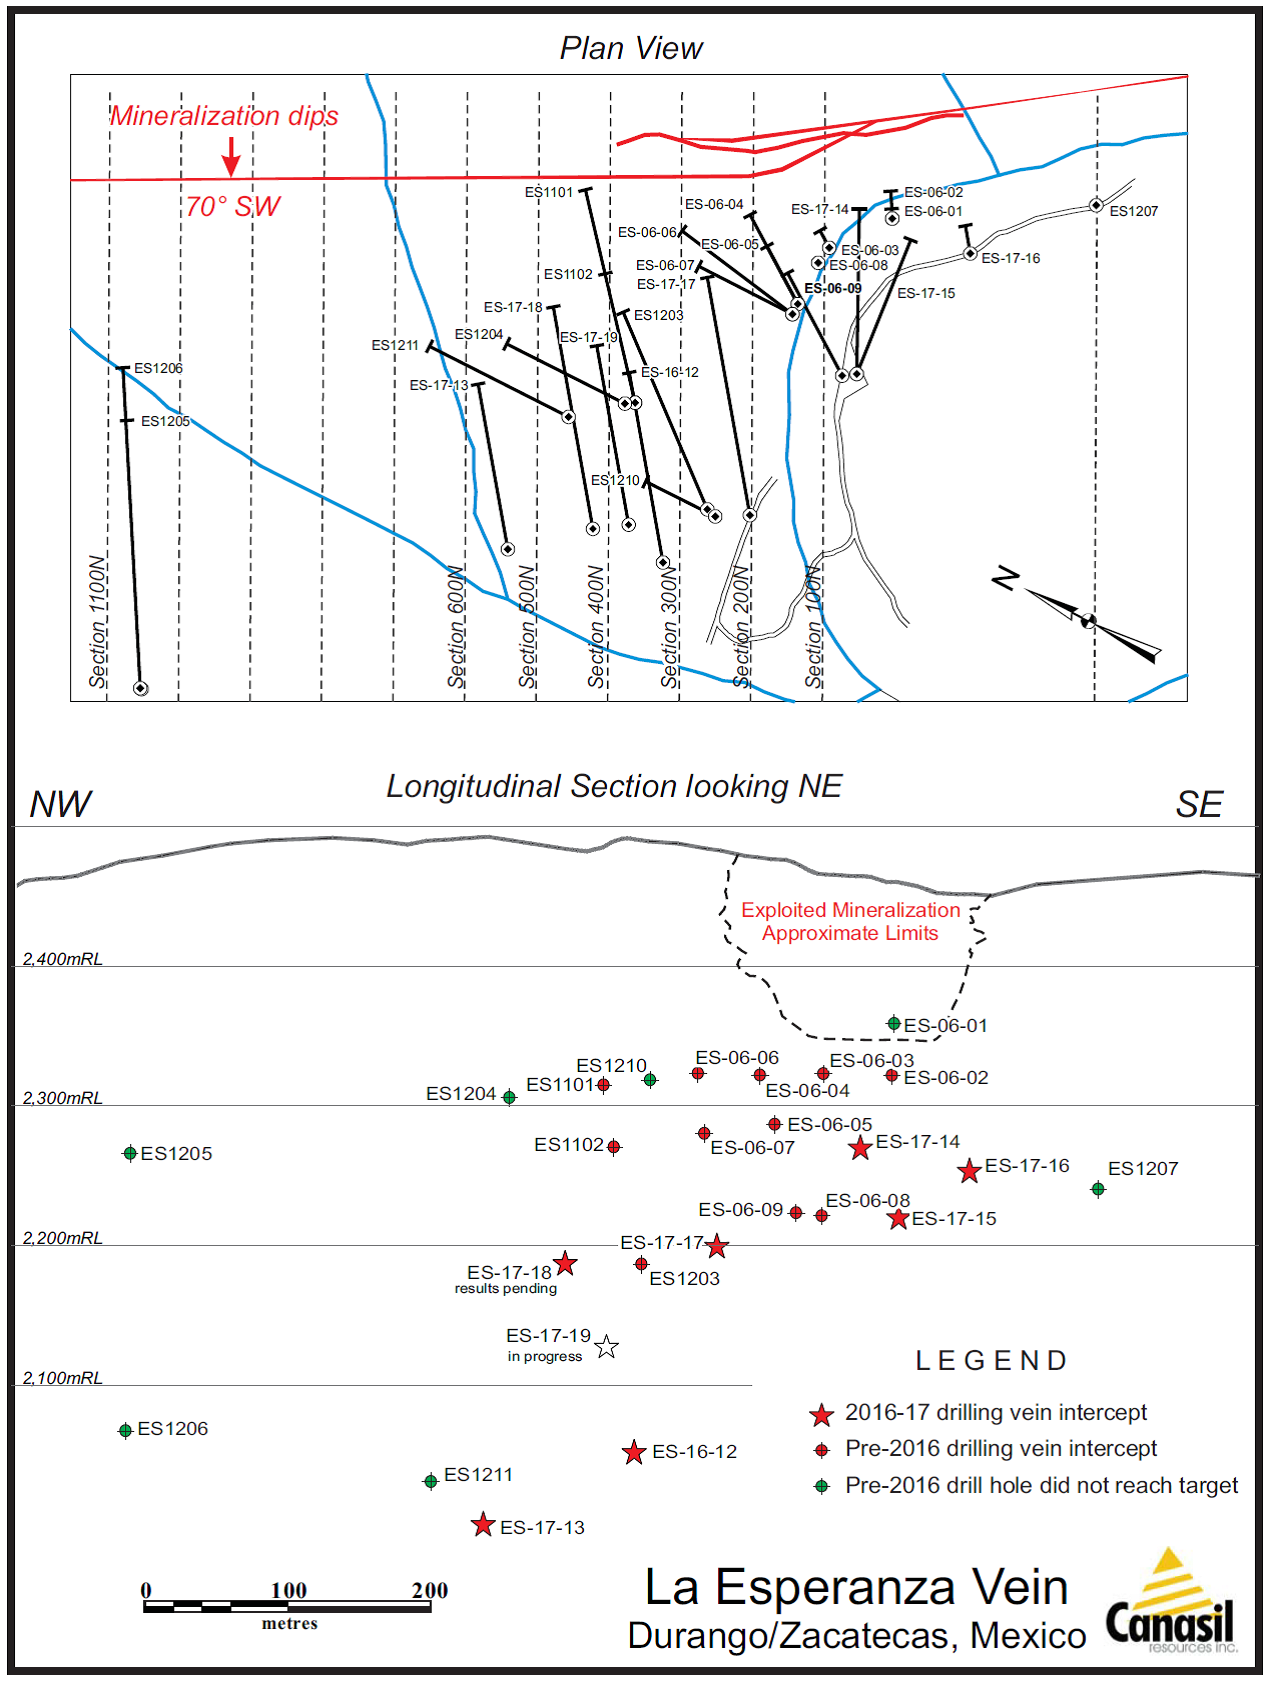 La Esperanza Project, Durango & Zacatecas, Mexico: La Esperanza Vein Drill Plan and Long Section